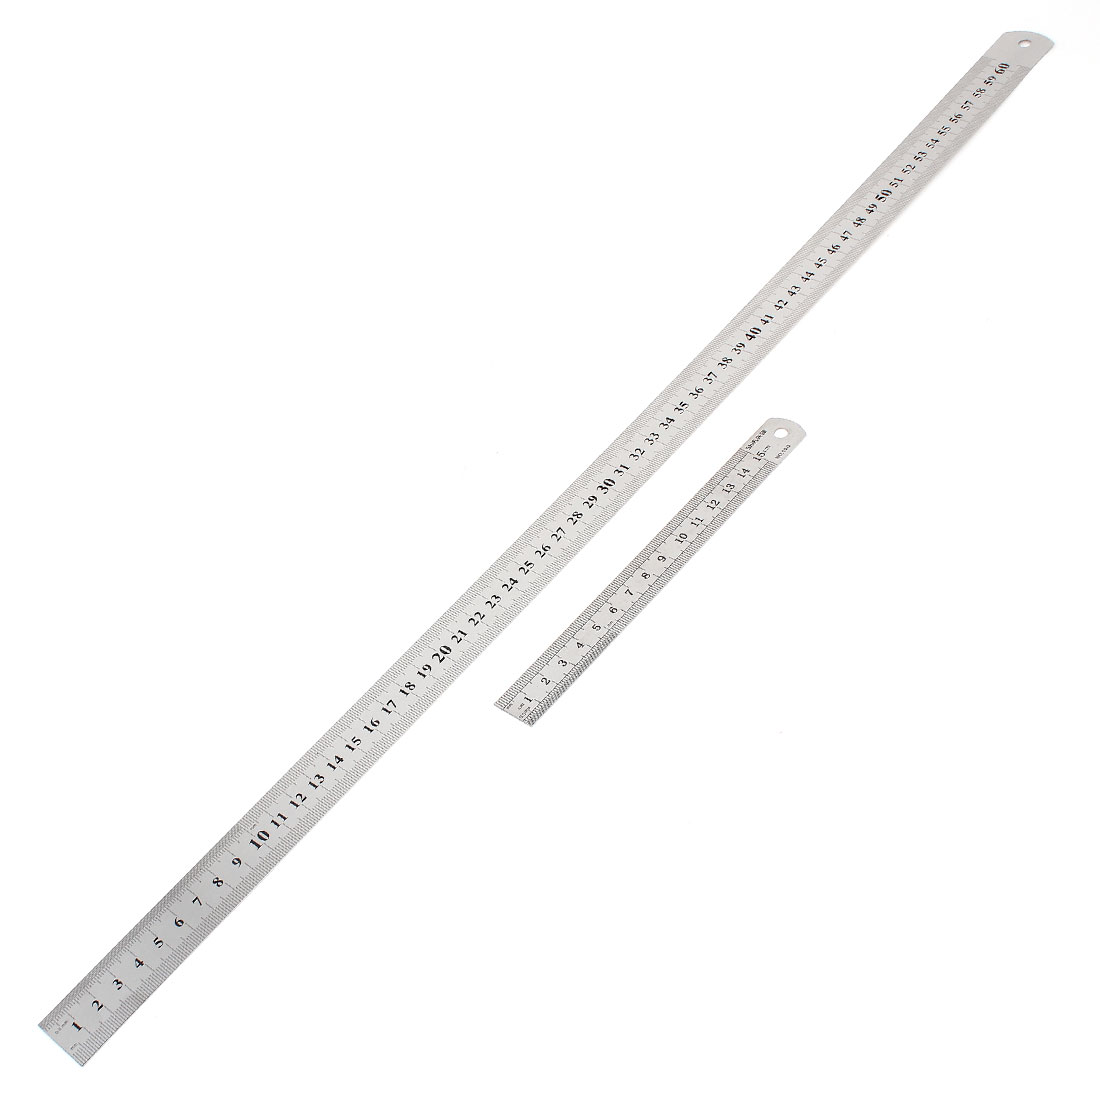 2 in 1 15cm 60cm Double Sides Students Metric Straight Ruler Silver Tone